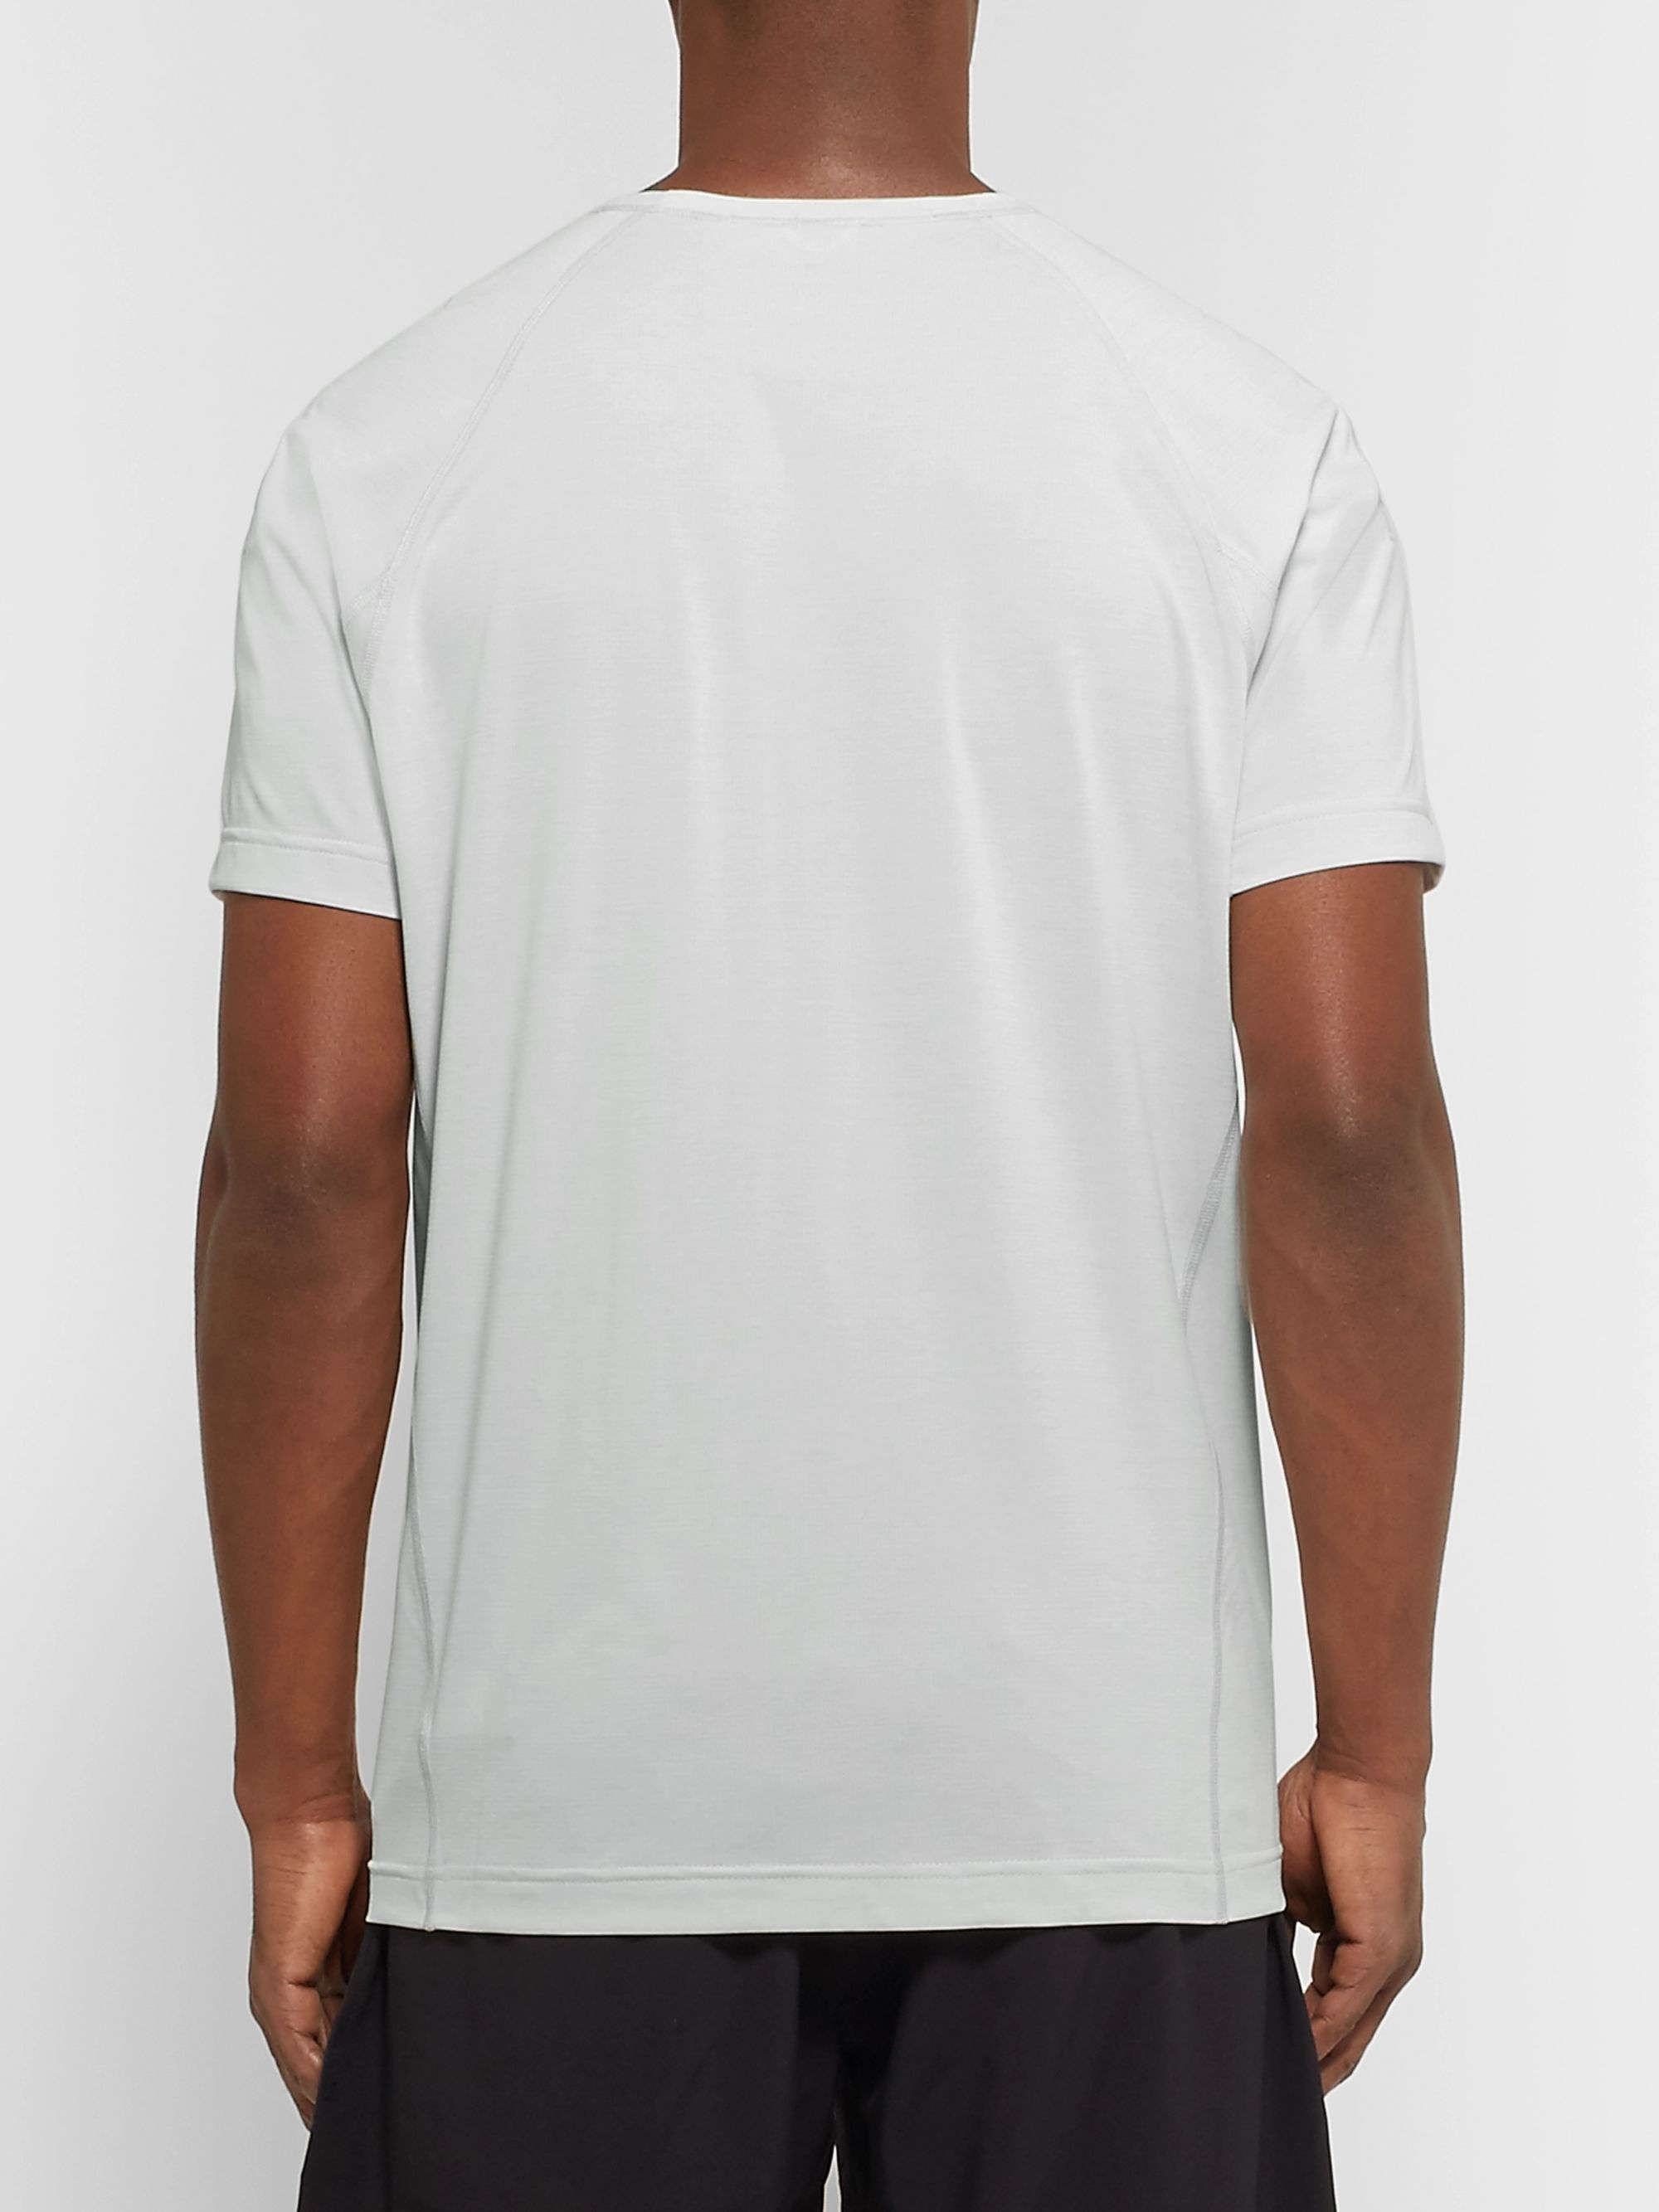 Reigning Champ Performance Mesh T-Shirt